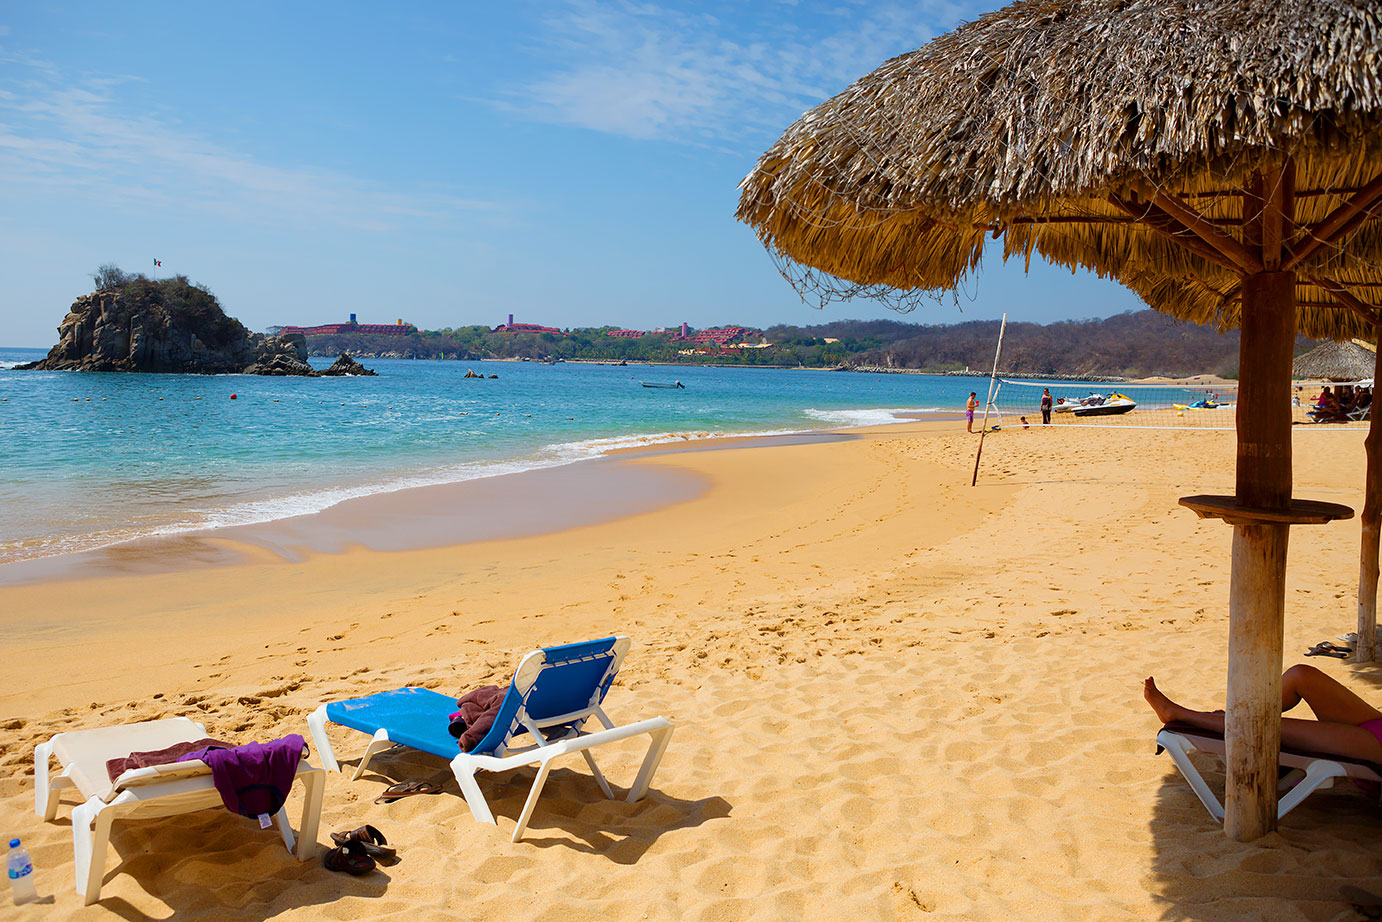 Two lounge chairs and a thatched umbrella on a sandy beach on the Huatulco coast